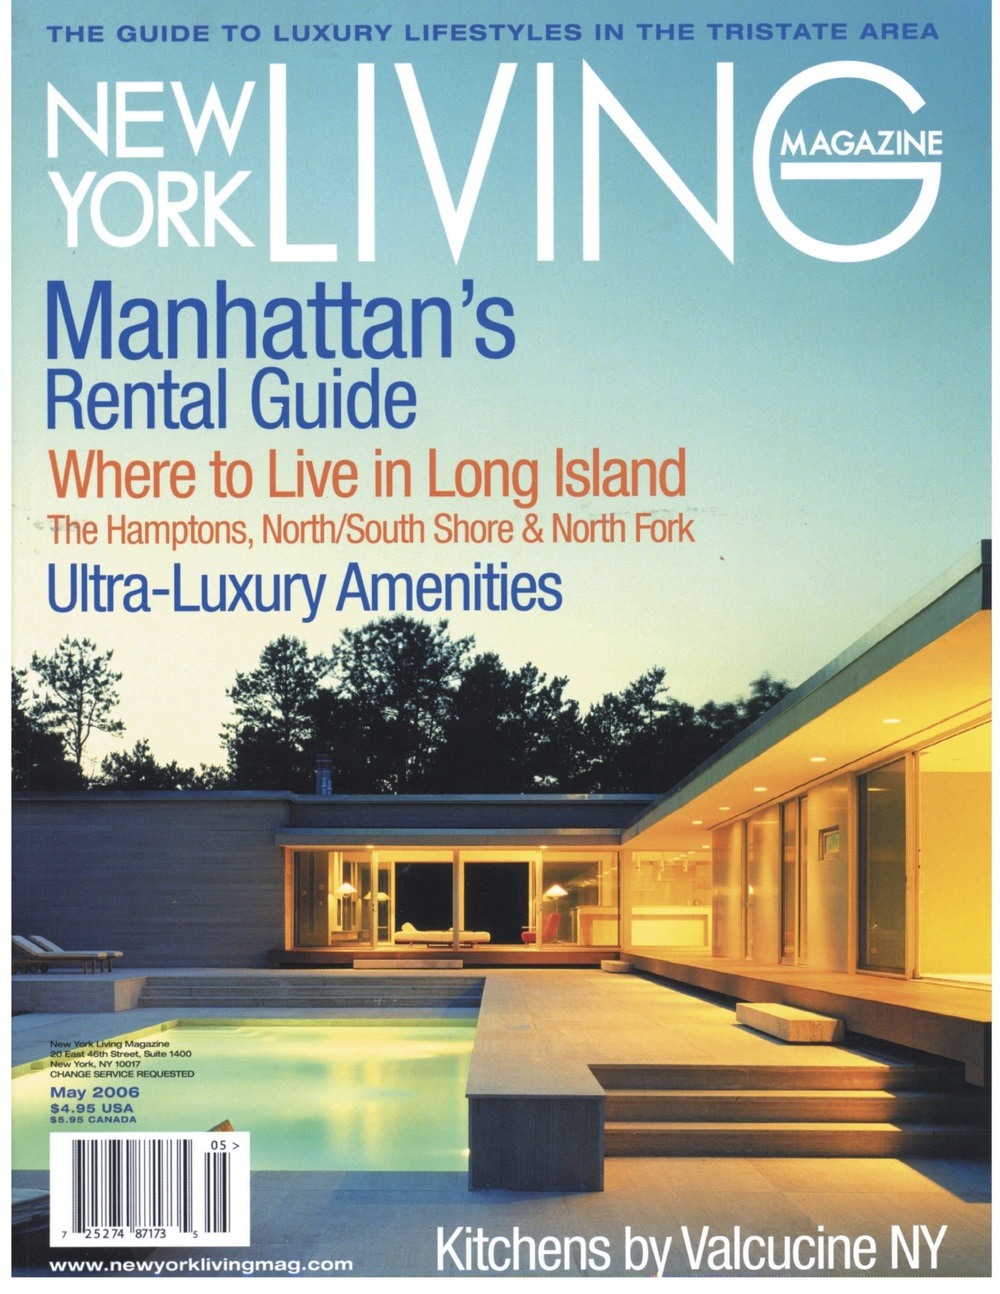 05.06 NY LIVING MAGAZINE (SAGAPONAC HOUSE)